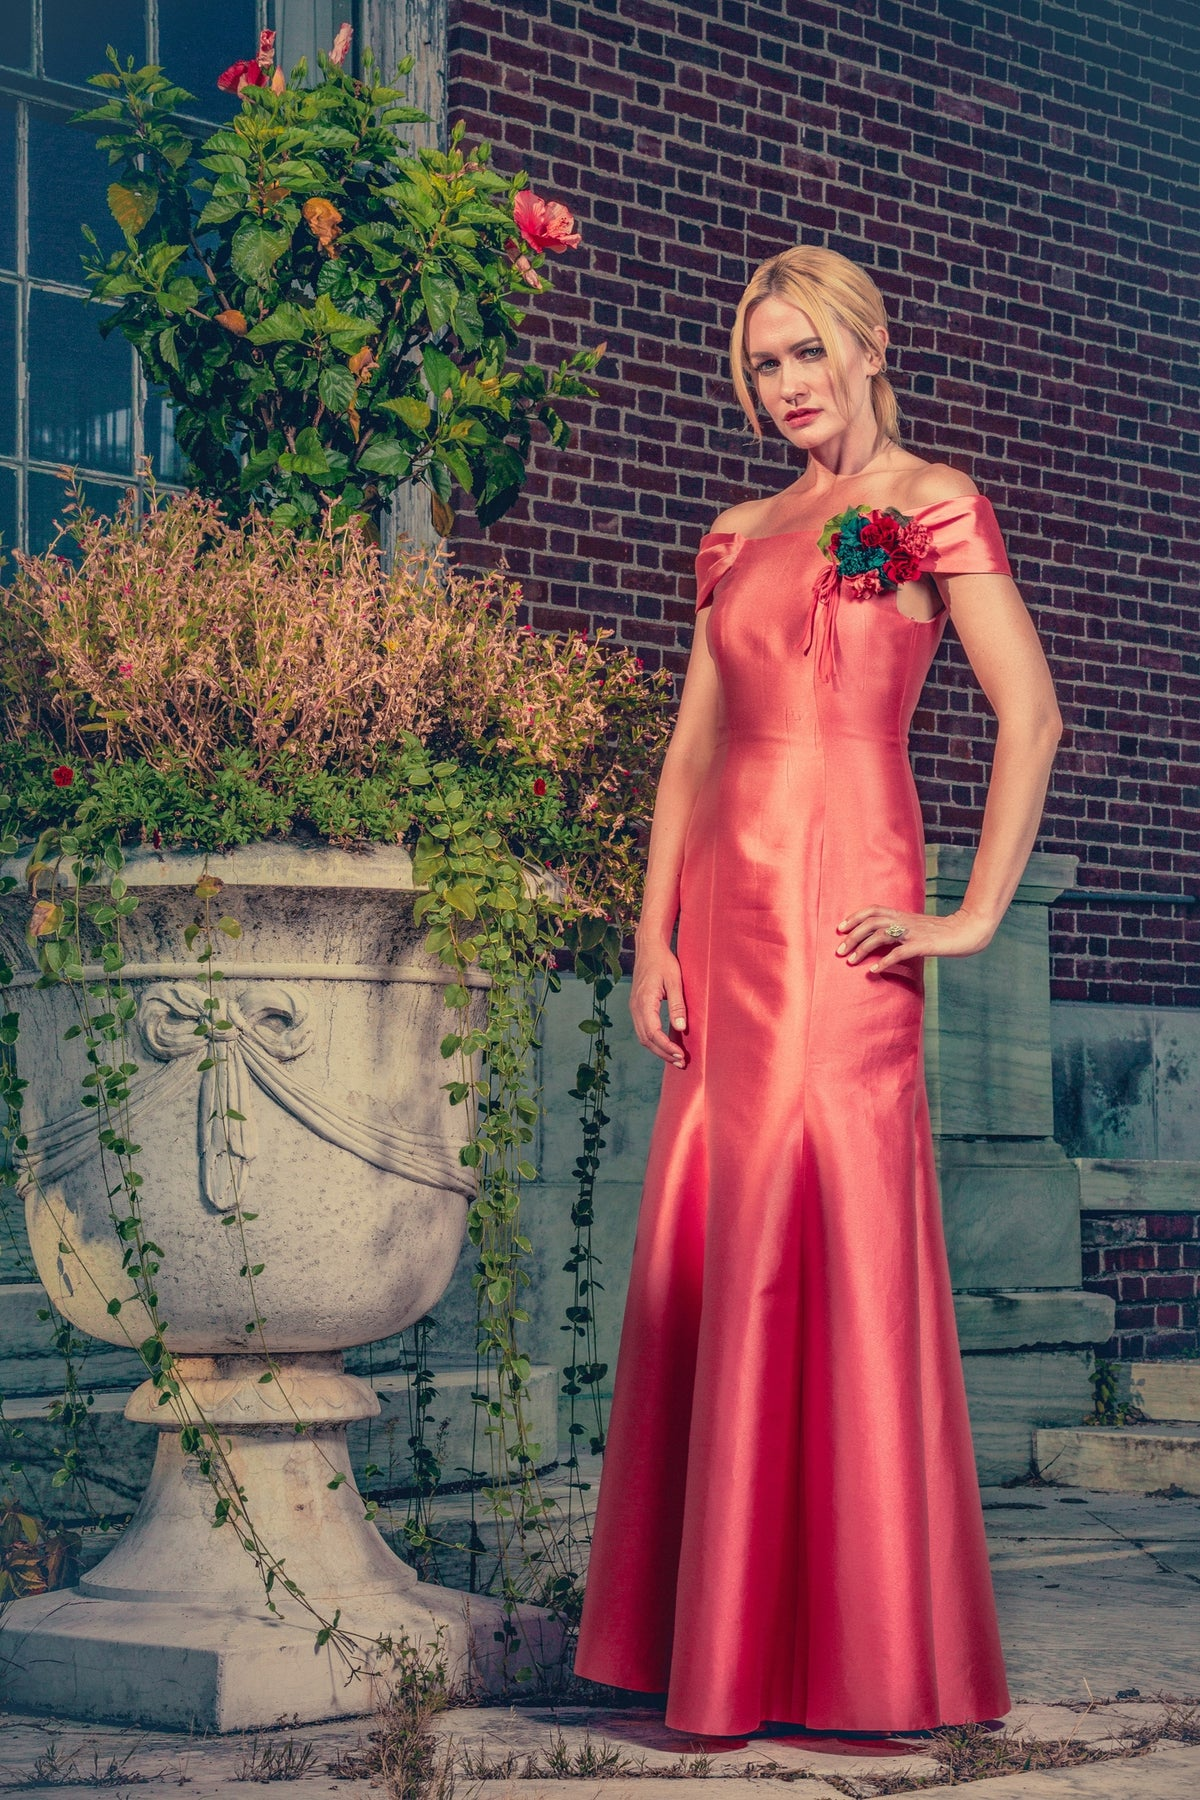 anna nieman designer dress Boston. A dress for your special gala, the vibrant coral color and elegant shape make you stand out beautifully in the crowd. Be ready to handle a lot of compliments!